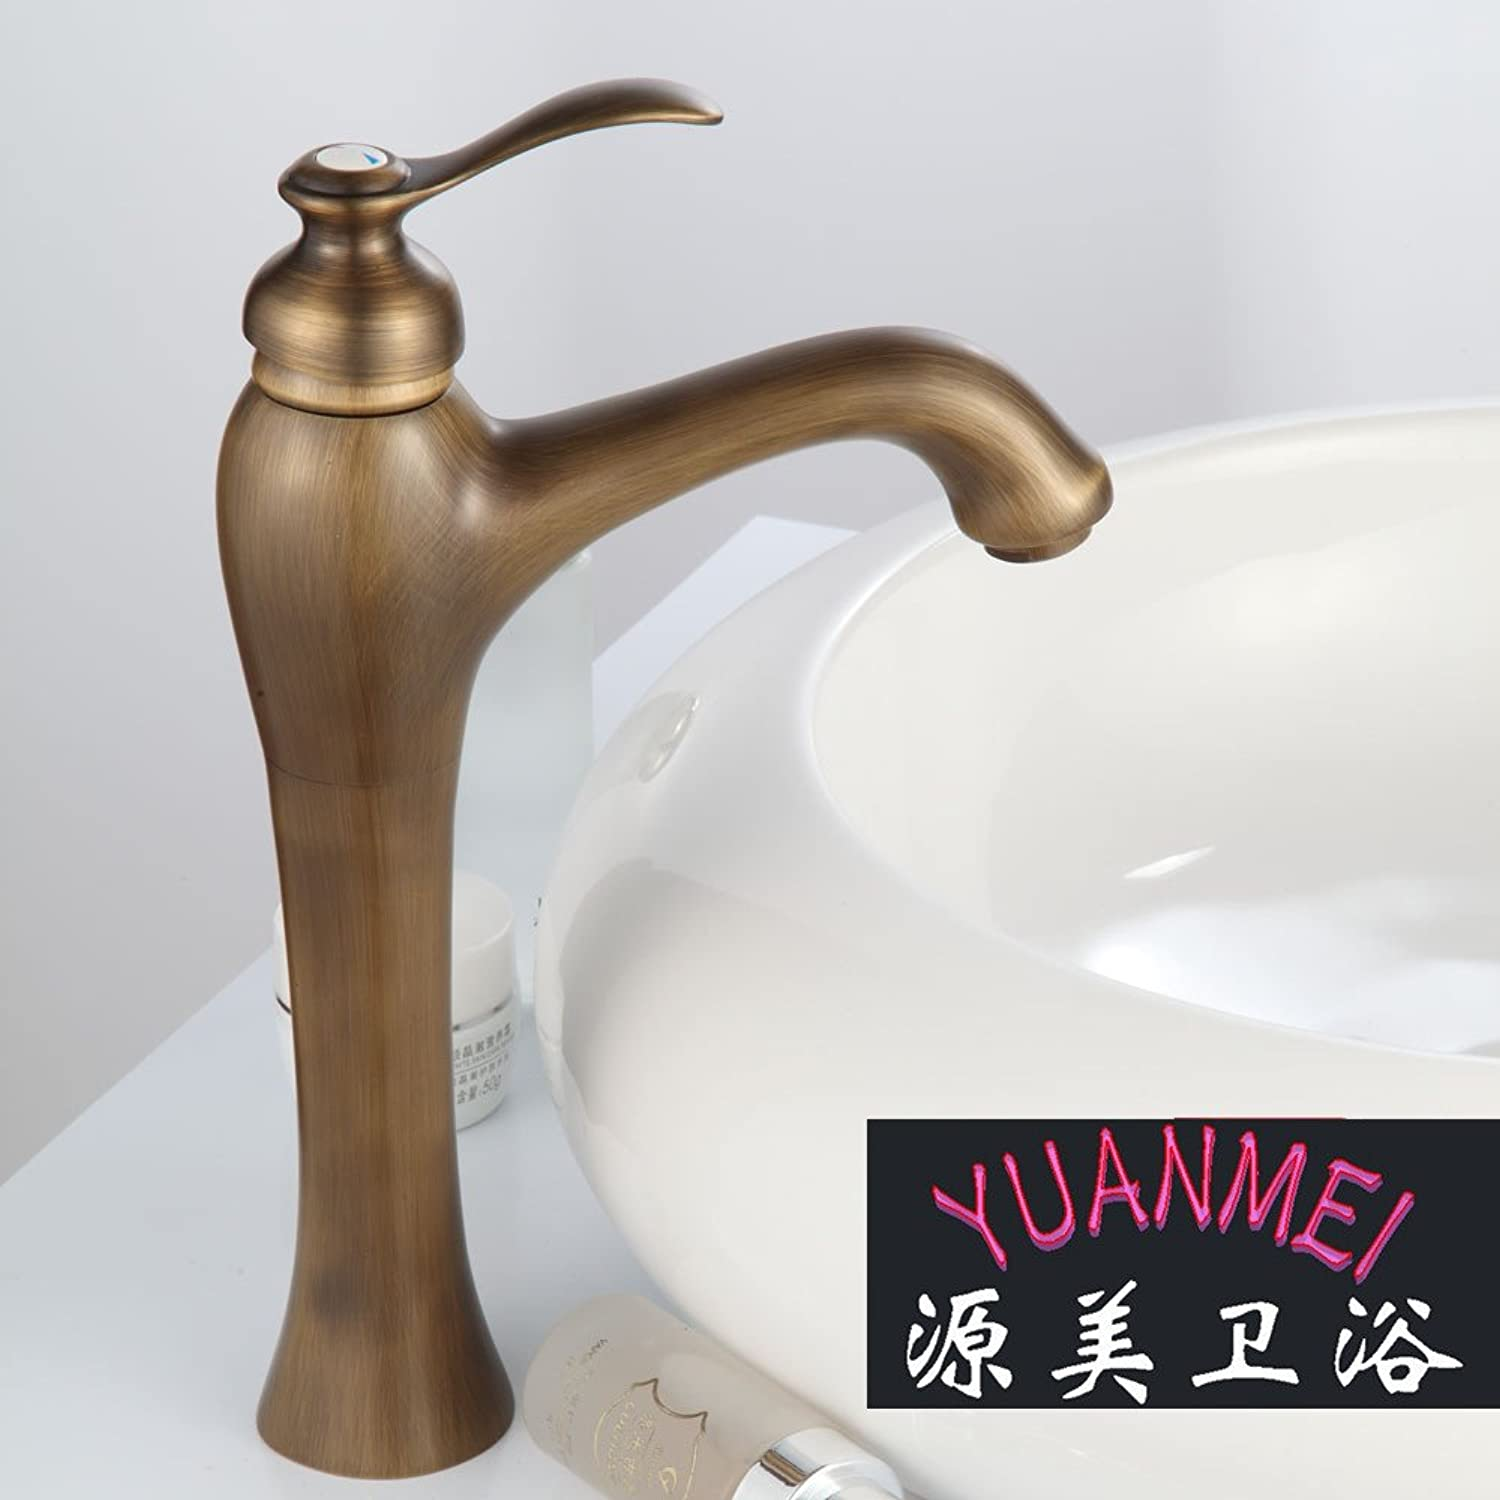 Commercial Single Lever Pull Down Kitchen Sink Faucet Brass Constructed Polished Antique Basin Faucet Washbasin European Antique Faucet Basin and Kitchen Dual Use